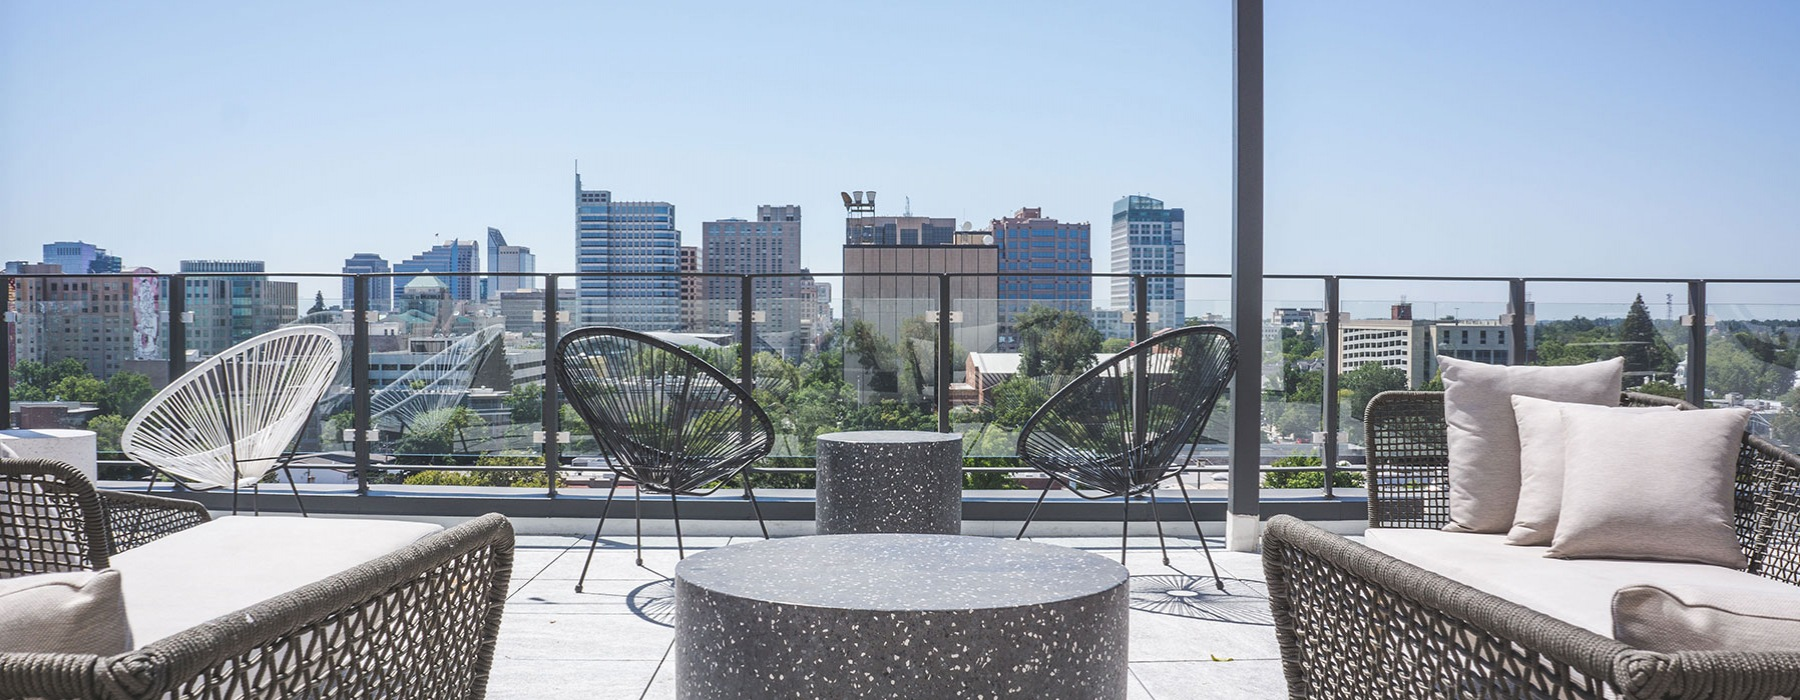 Rooftop deck view of downtown